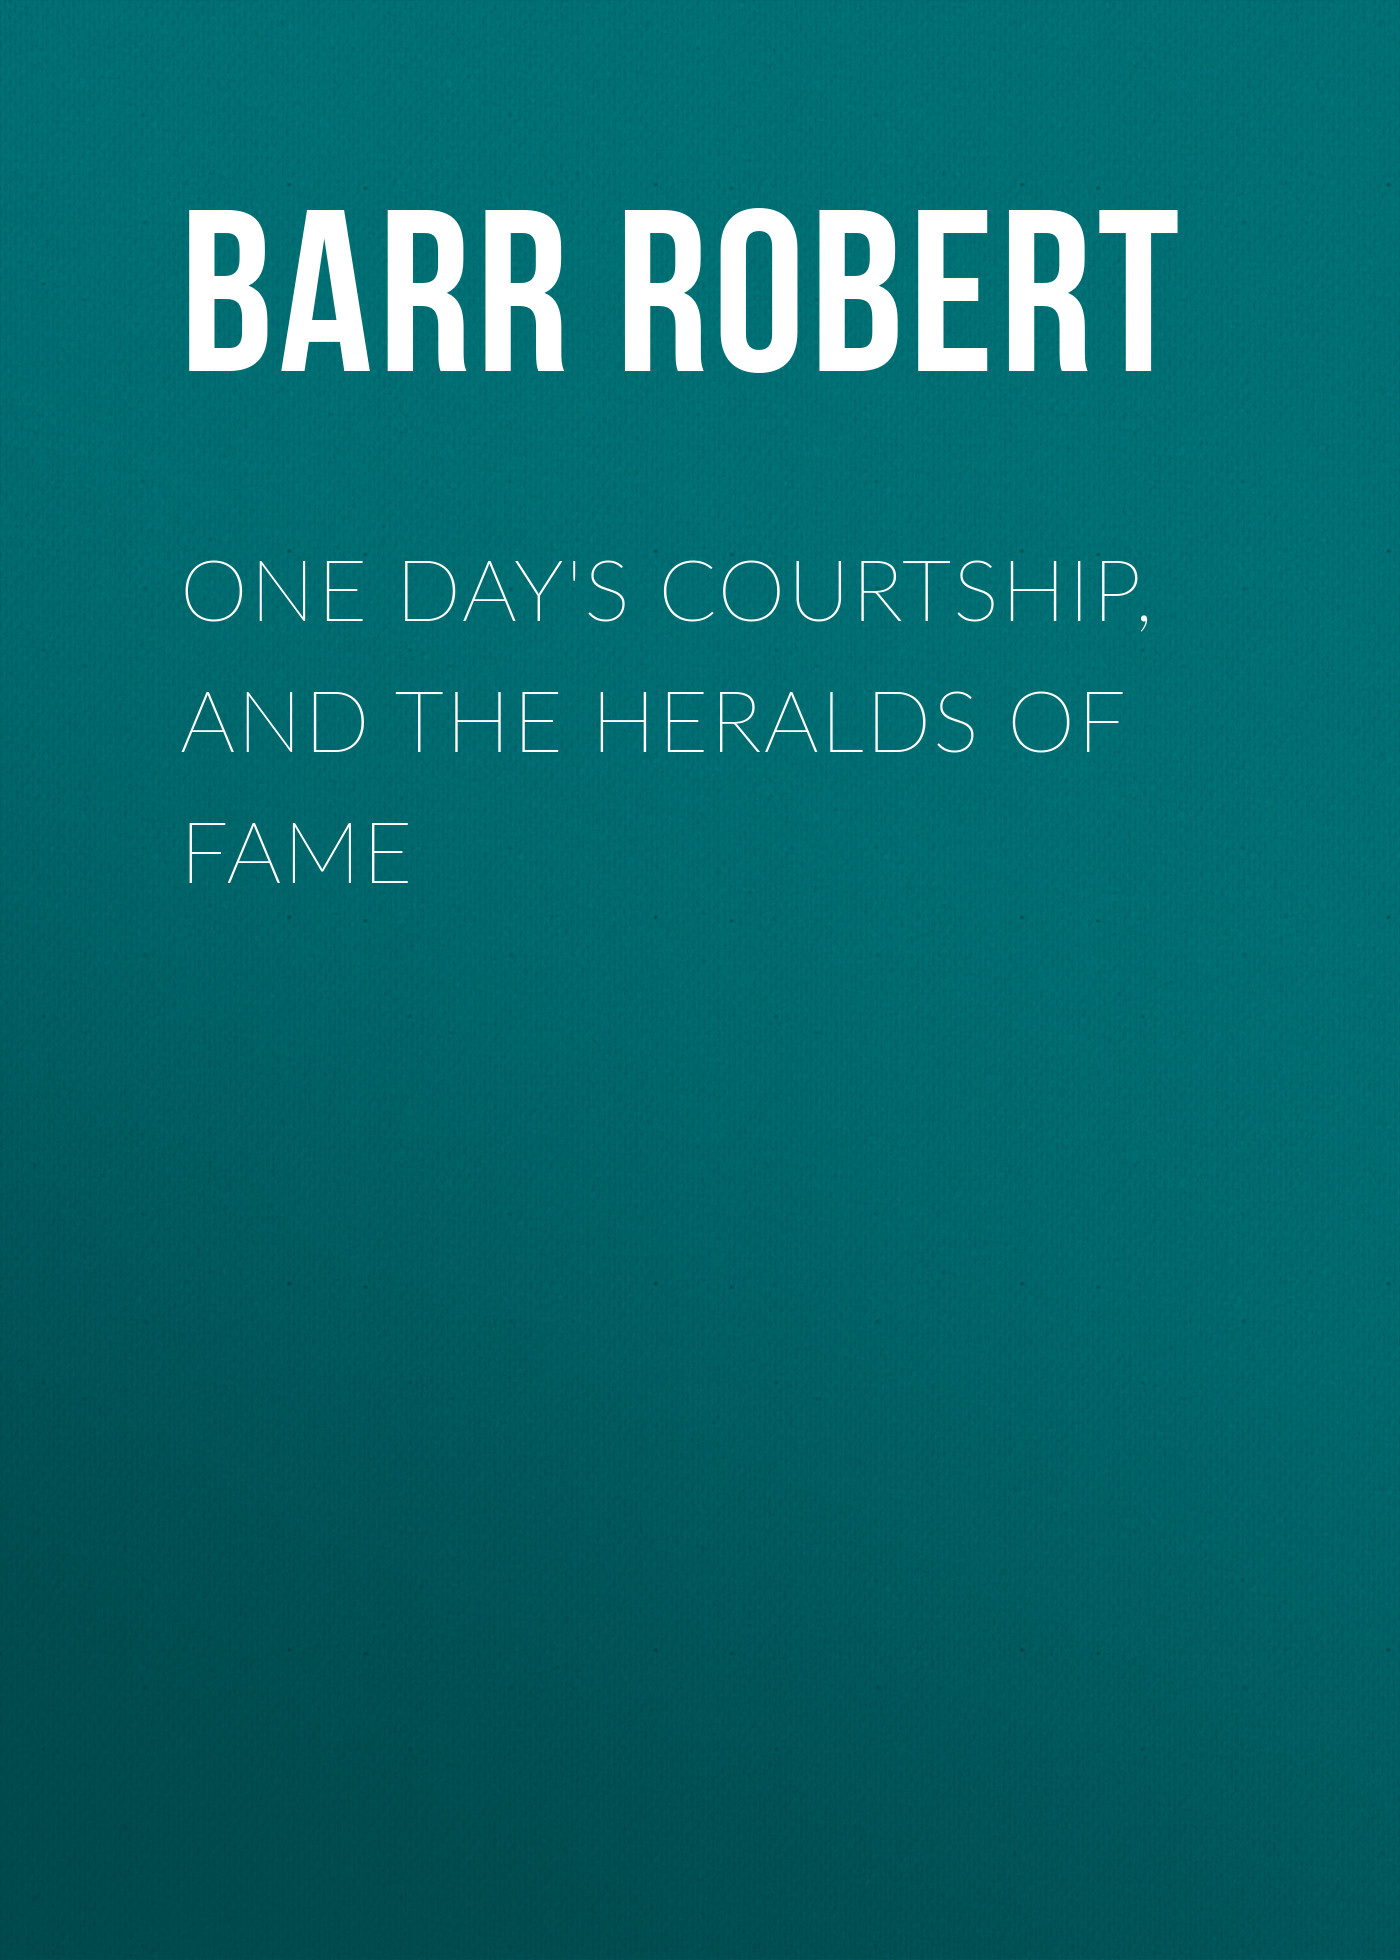 Barr Robert One Day's Courtship, and The Heralds of Fame